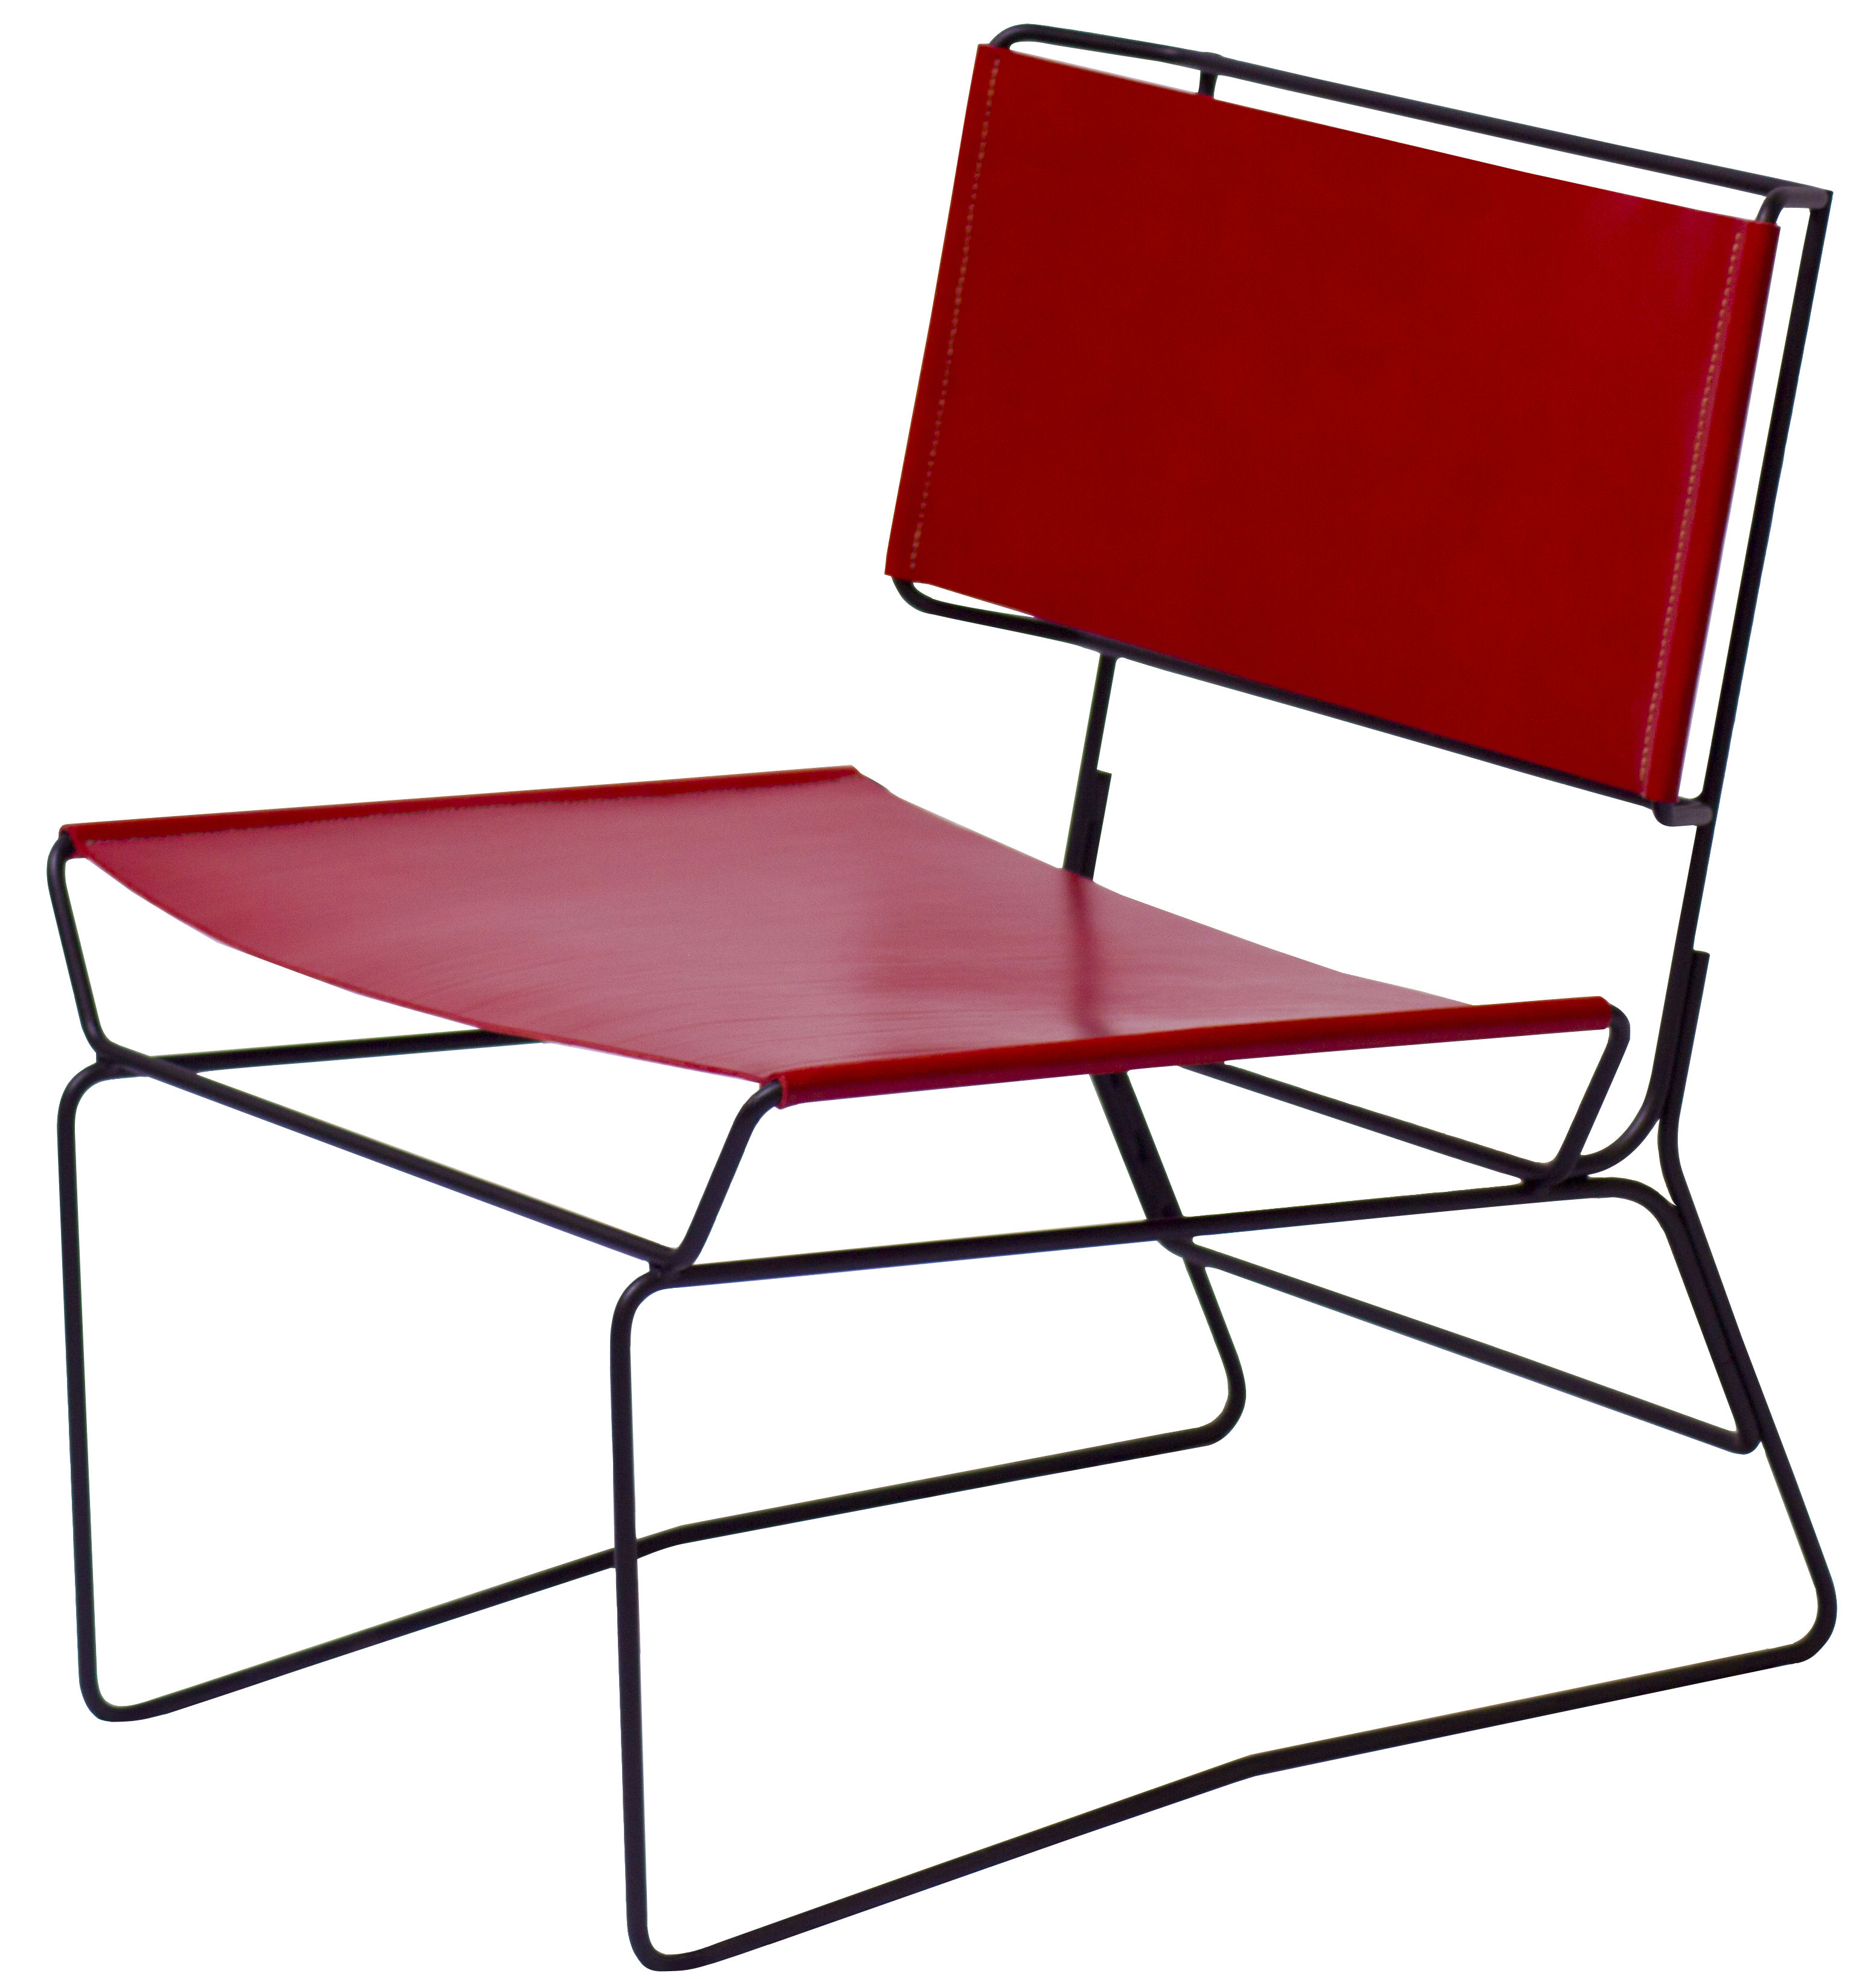 Furniture - Armchairs - Fil Low armchair by AA-New Design - Red leather / Black structure - Epoxy lacquered steel, Leather